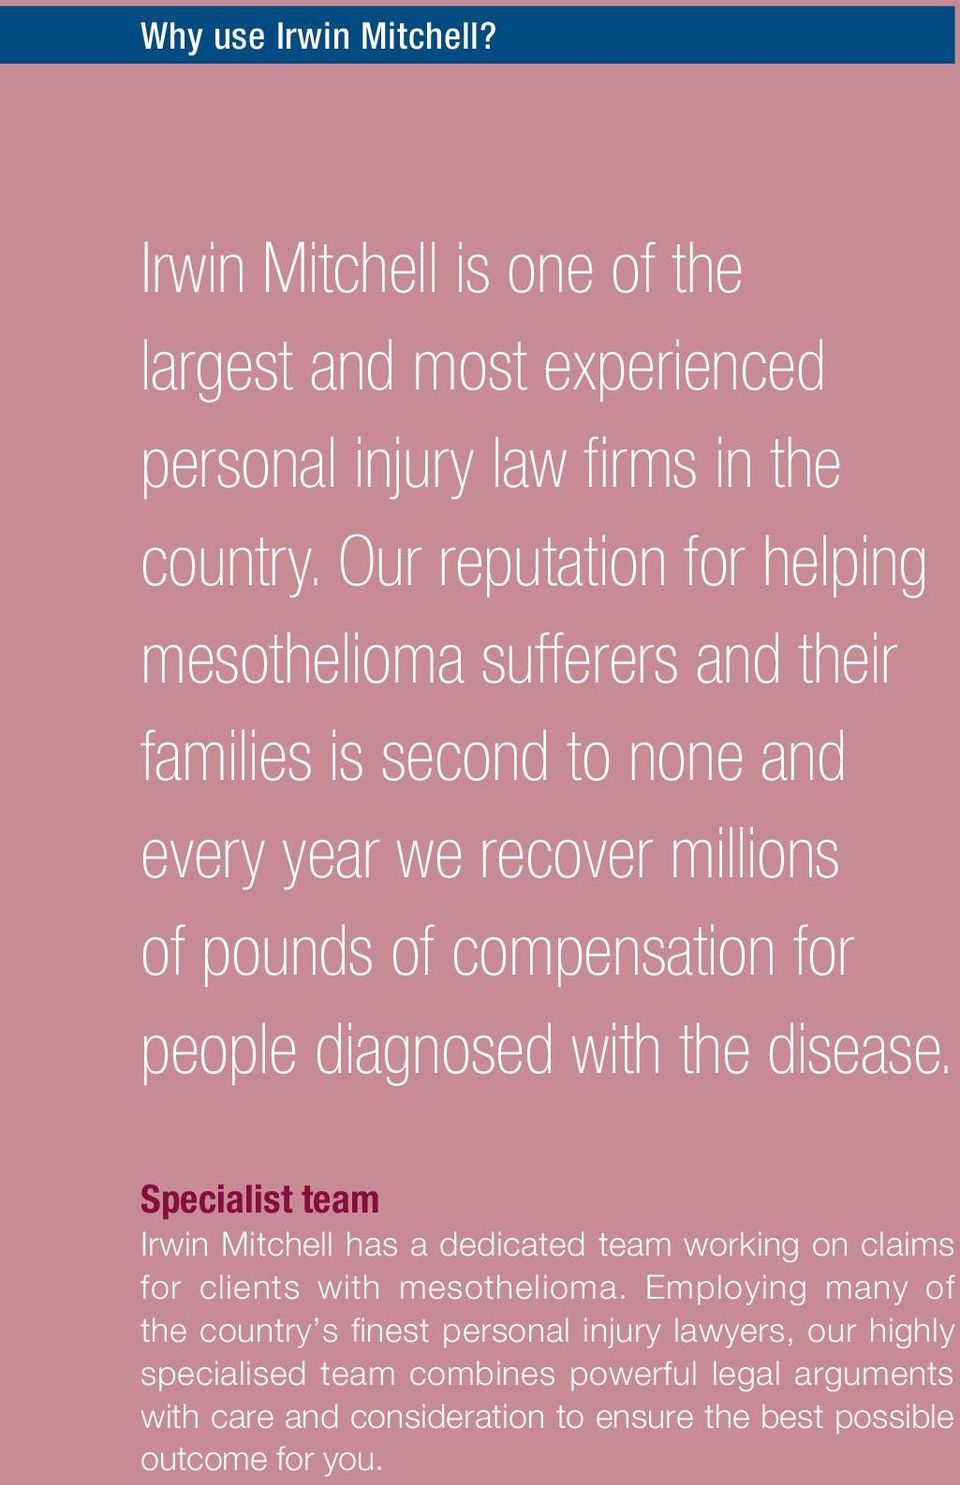 people diagnosed with the disease. Specialist team Irwin Mitchell has a dedicated team working on claims for clients with mesothelioma.